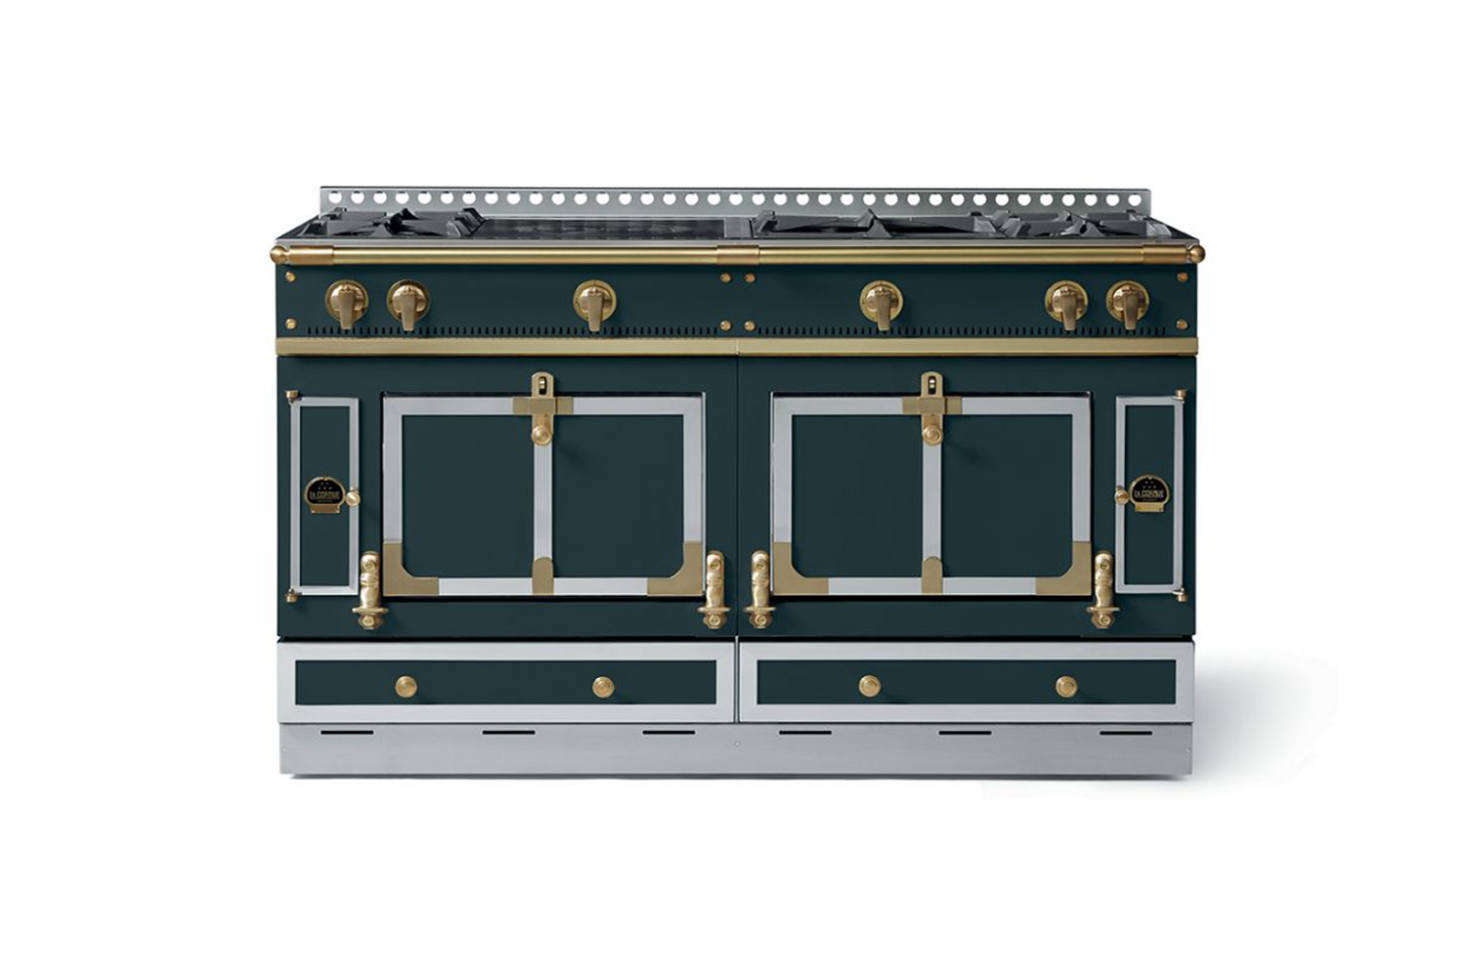 French company La Cornue has been making high-end kitchen ranges since 1908 and offers two main lines, the Cháteau and the Cornufé, which can each be customized by size, feature, and color. The smallest Cháteau range, Cháteau 75 starts at $25,700, and the smallest Cornufé, Cornufé 90 Albertine, starts at $8,100.